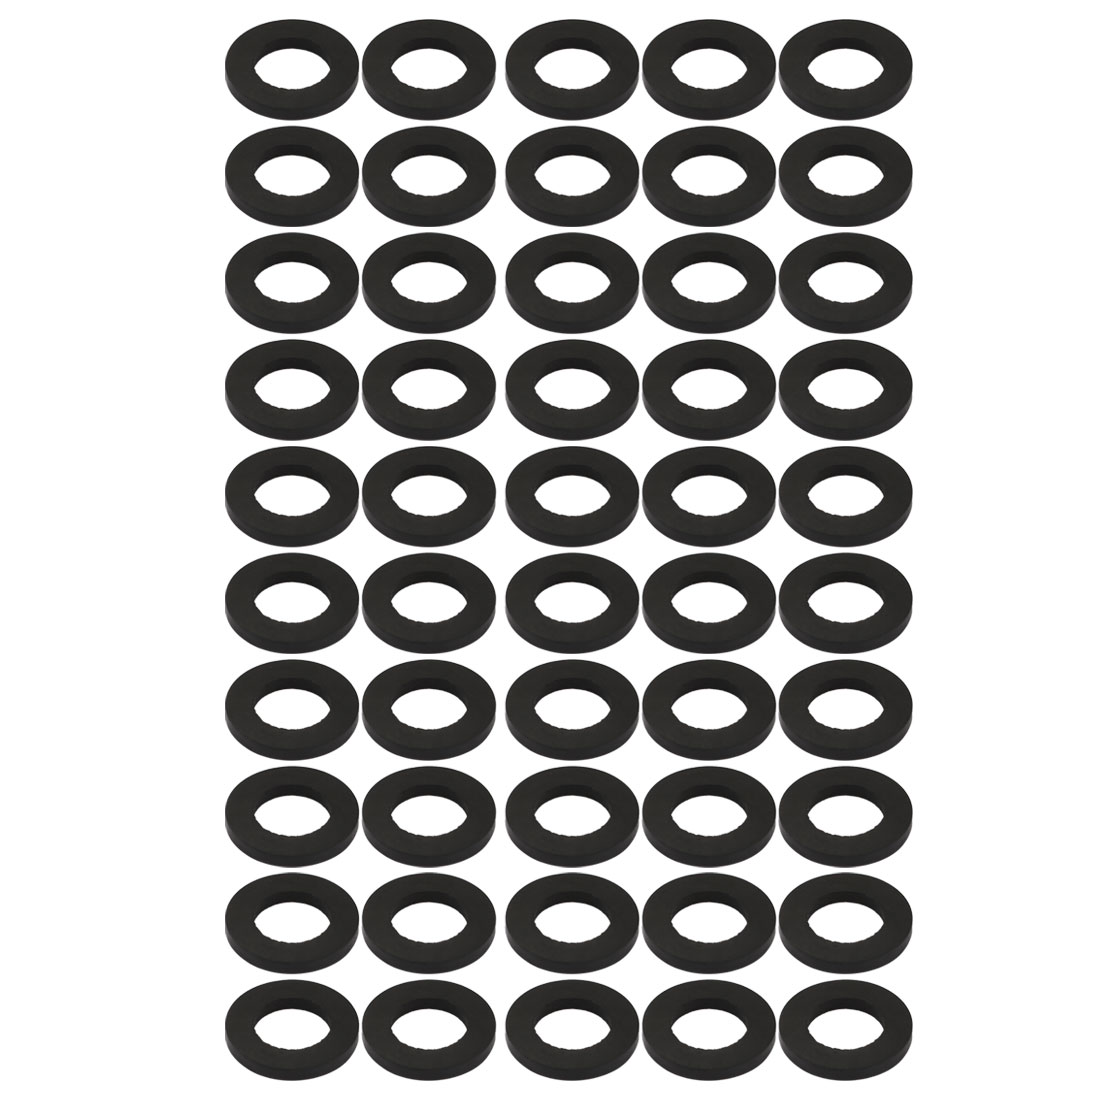 50pcs Black Color Rubber Round Flat Washer Assortment Size 14x24x3mm Flat Washer